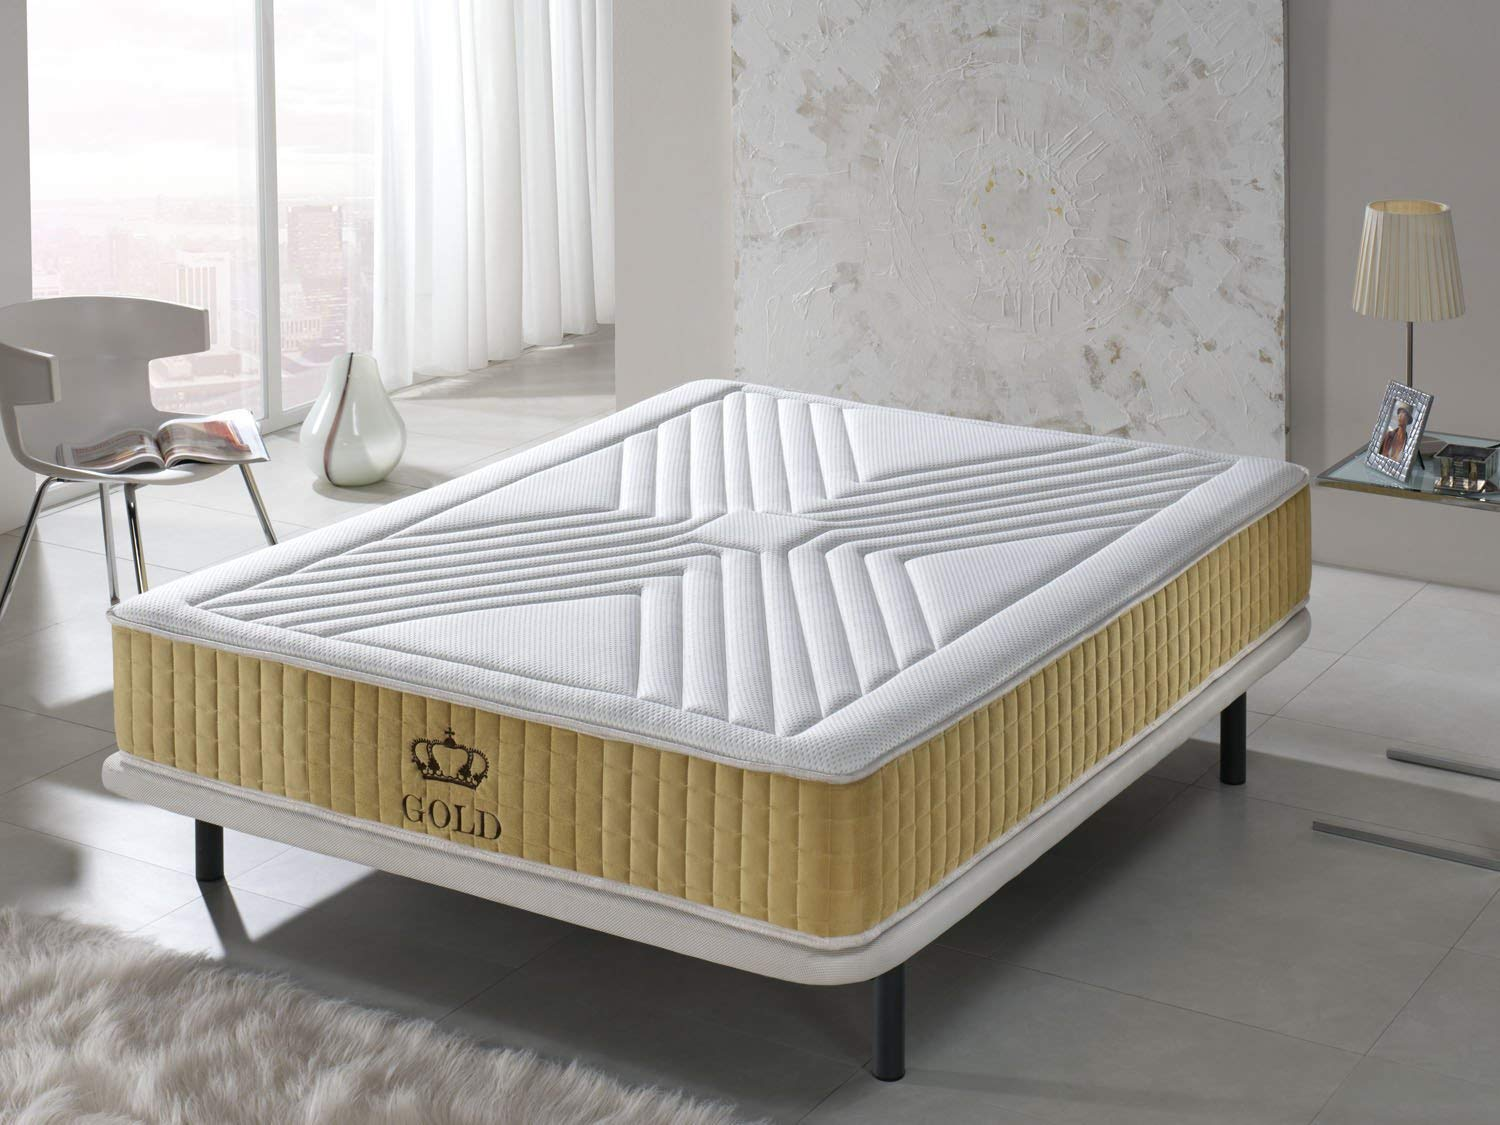 SIMPUR RELAX   Luxury Gold-threaded 11-Zone Memory Mattress Depth 25 cm   90 x 190   Soft touch sleeping surface  Orthopaedic support  High Quality Side-stitched border   Balanced Sleep Temperature  100% Quality- Satisfaction Warranty   Made 100% in EU.